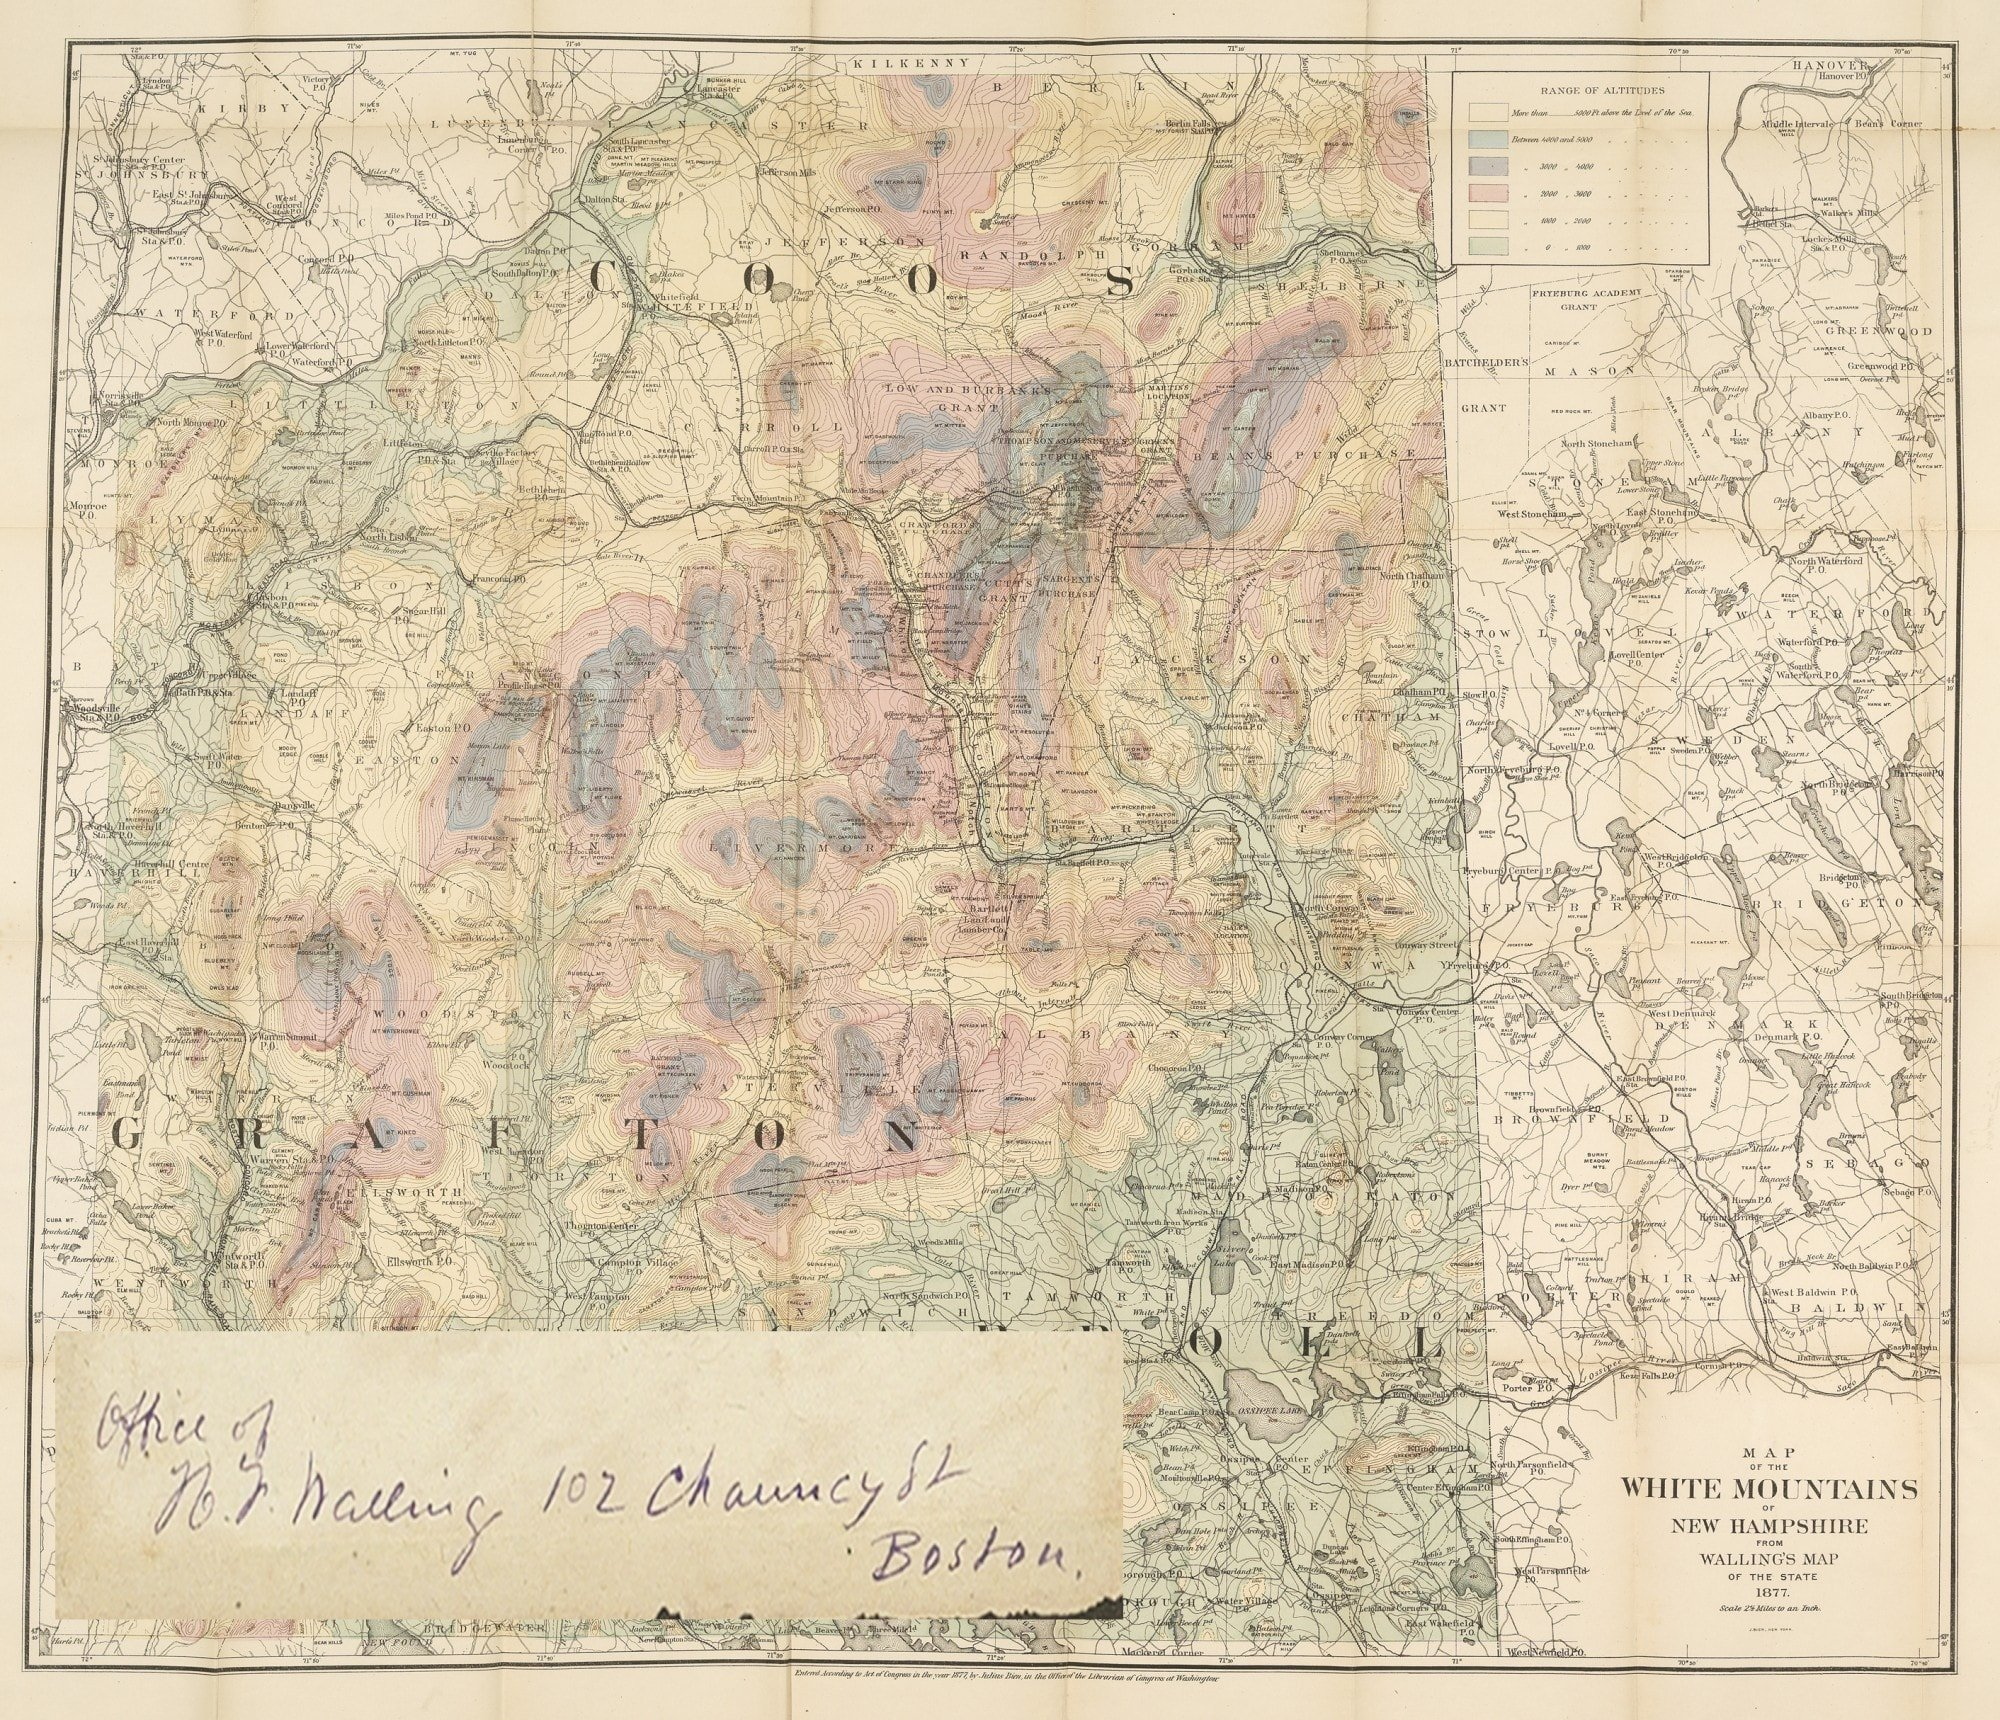 An important White Mountains map, with great provenance ... on map of black hills, map of st. lawrence river, map of colorado river, map of hudson river, map of rocky mountain, map of alps, map of rio grande, map of united states, map of great plains, map of connecticut, map of minnesota, map of great lakes, map of interior plains, map of cascade mountains, map of boston, map of maryland, map of grand canyon, map of tetons, map of shenandoah valley, map of canadian shield,